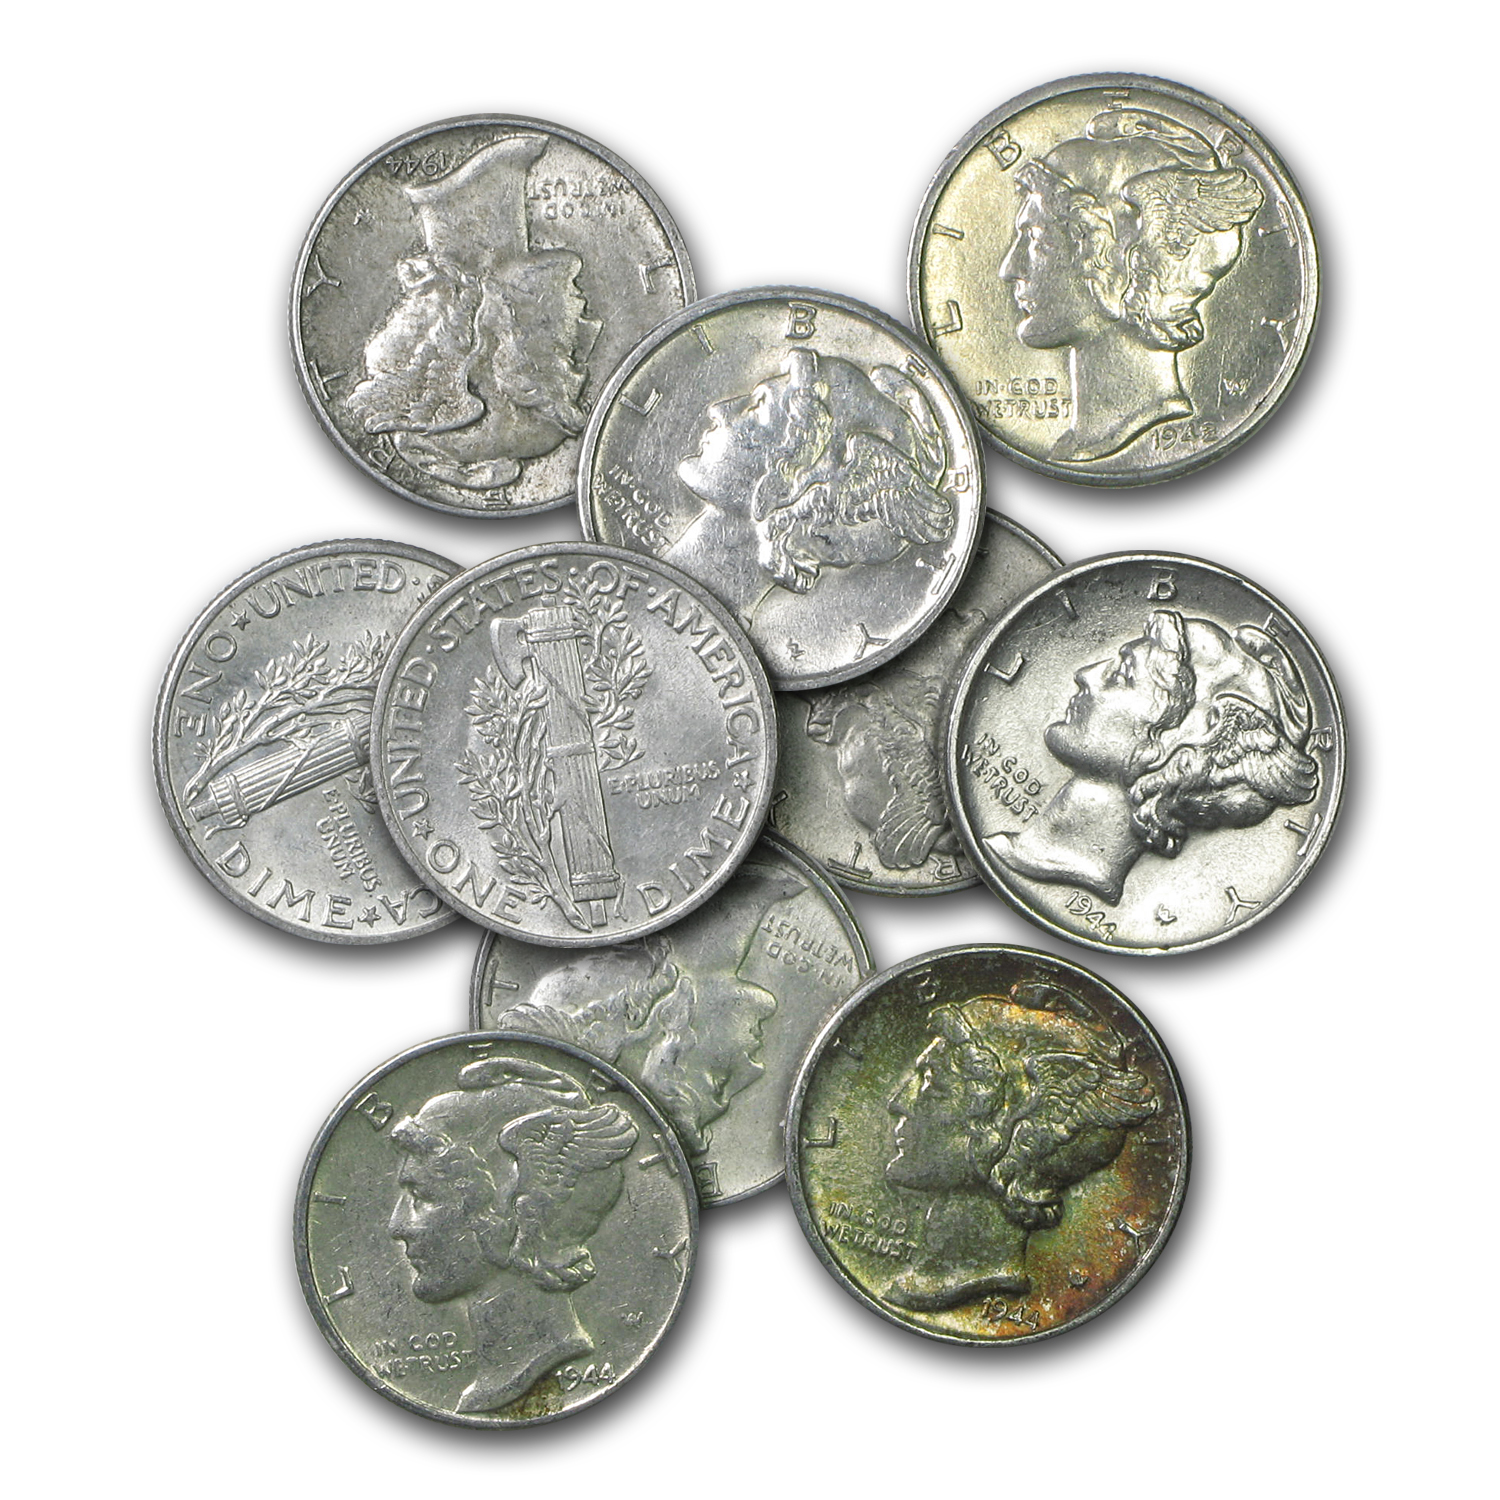 $1.00 Face Value AU Mercury Dimes